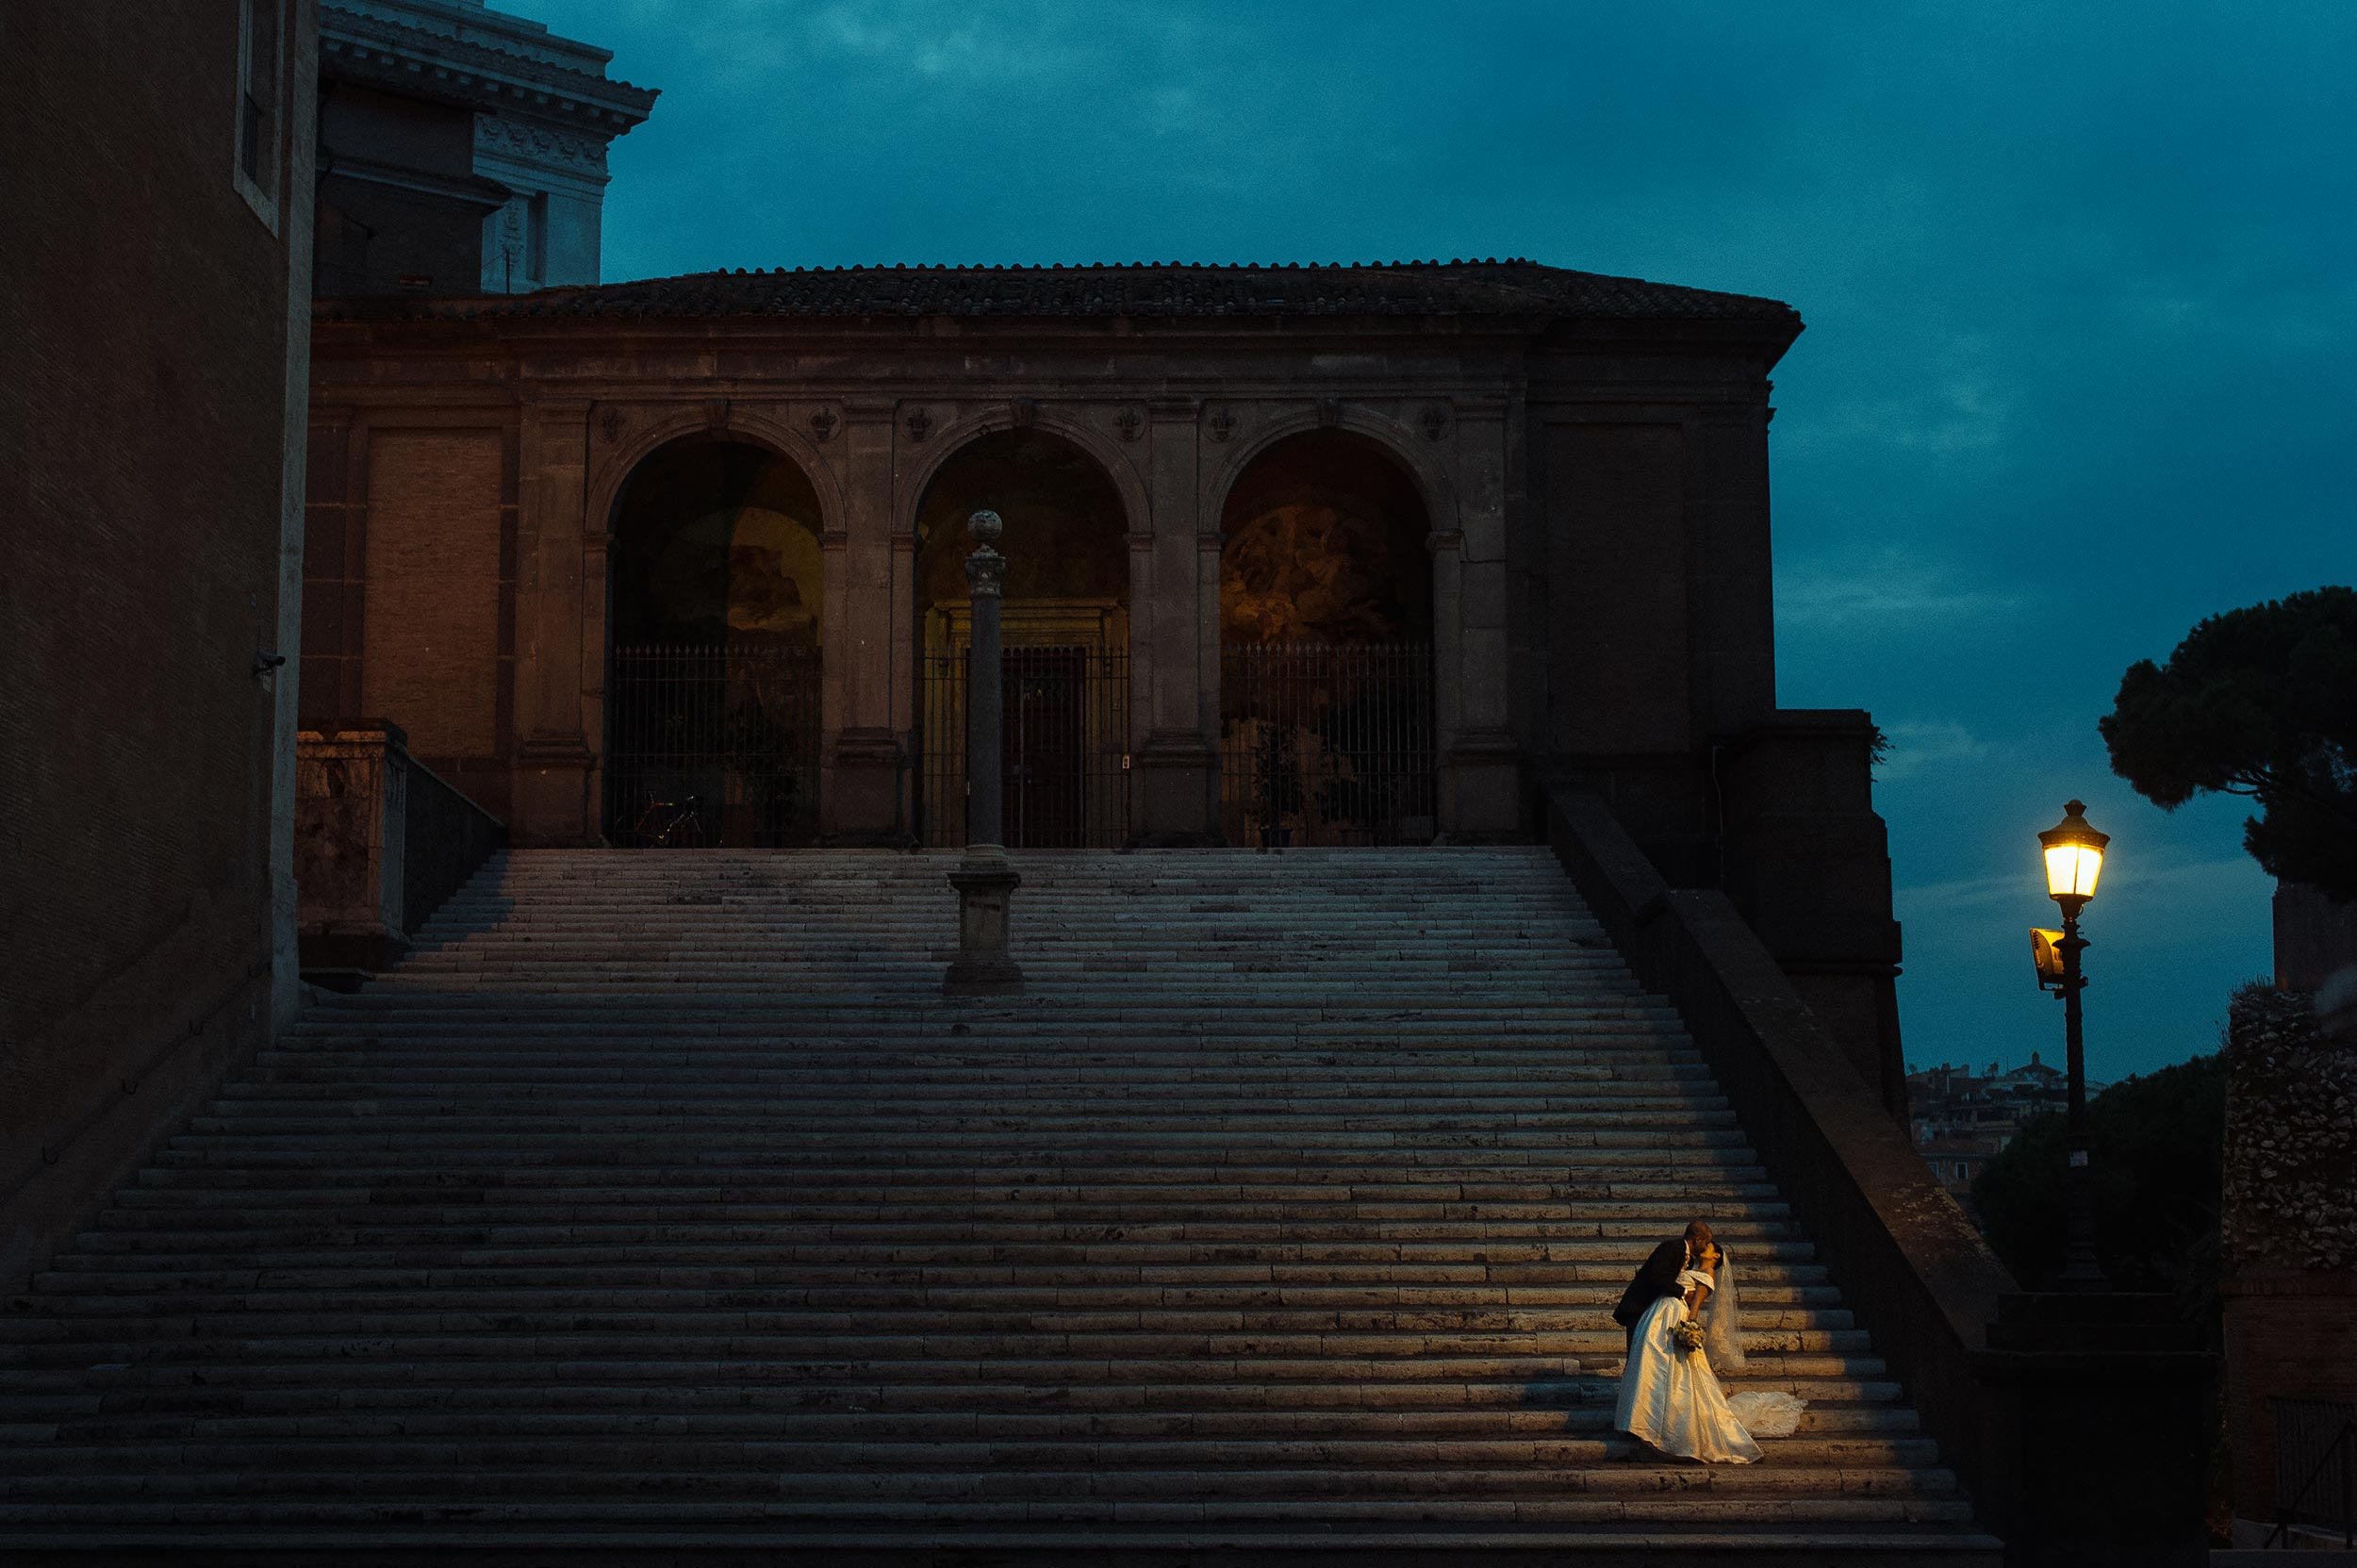 wedding-in-rome-ara-coeli-steps-at-night.jpg